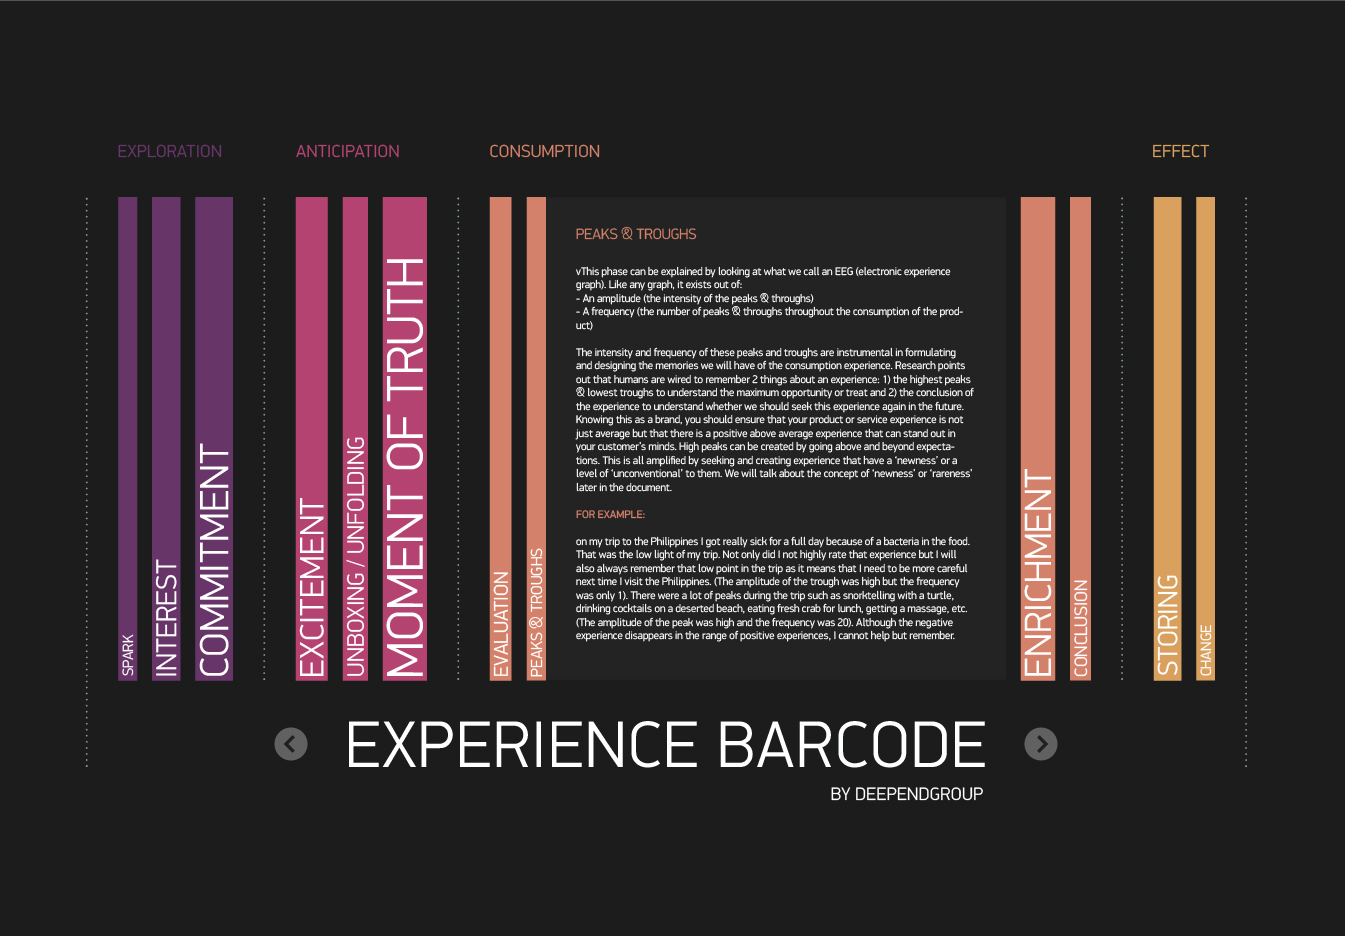 Indepth Experience Barcode 20150512 v01 BM